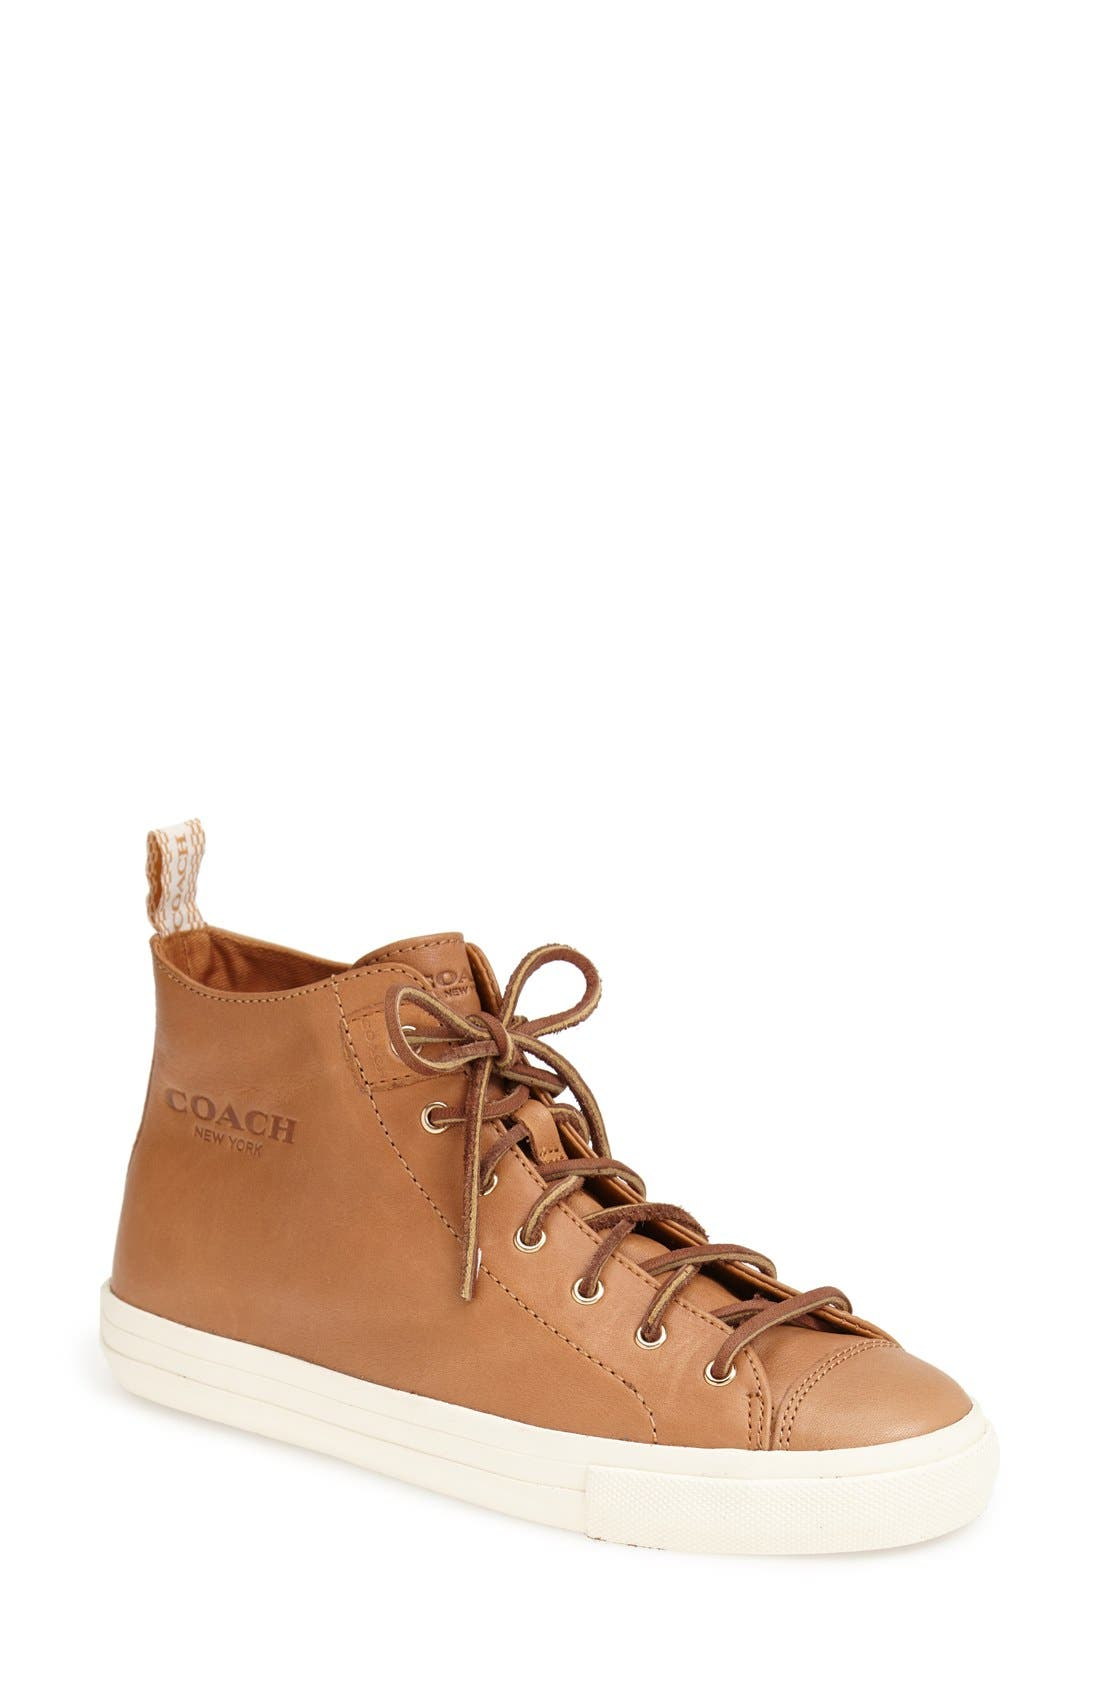 Main Image - COACH 'Brenna' Leather Sneaker (Women)